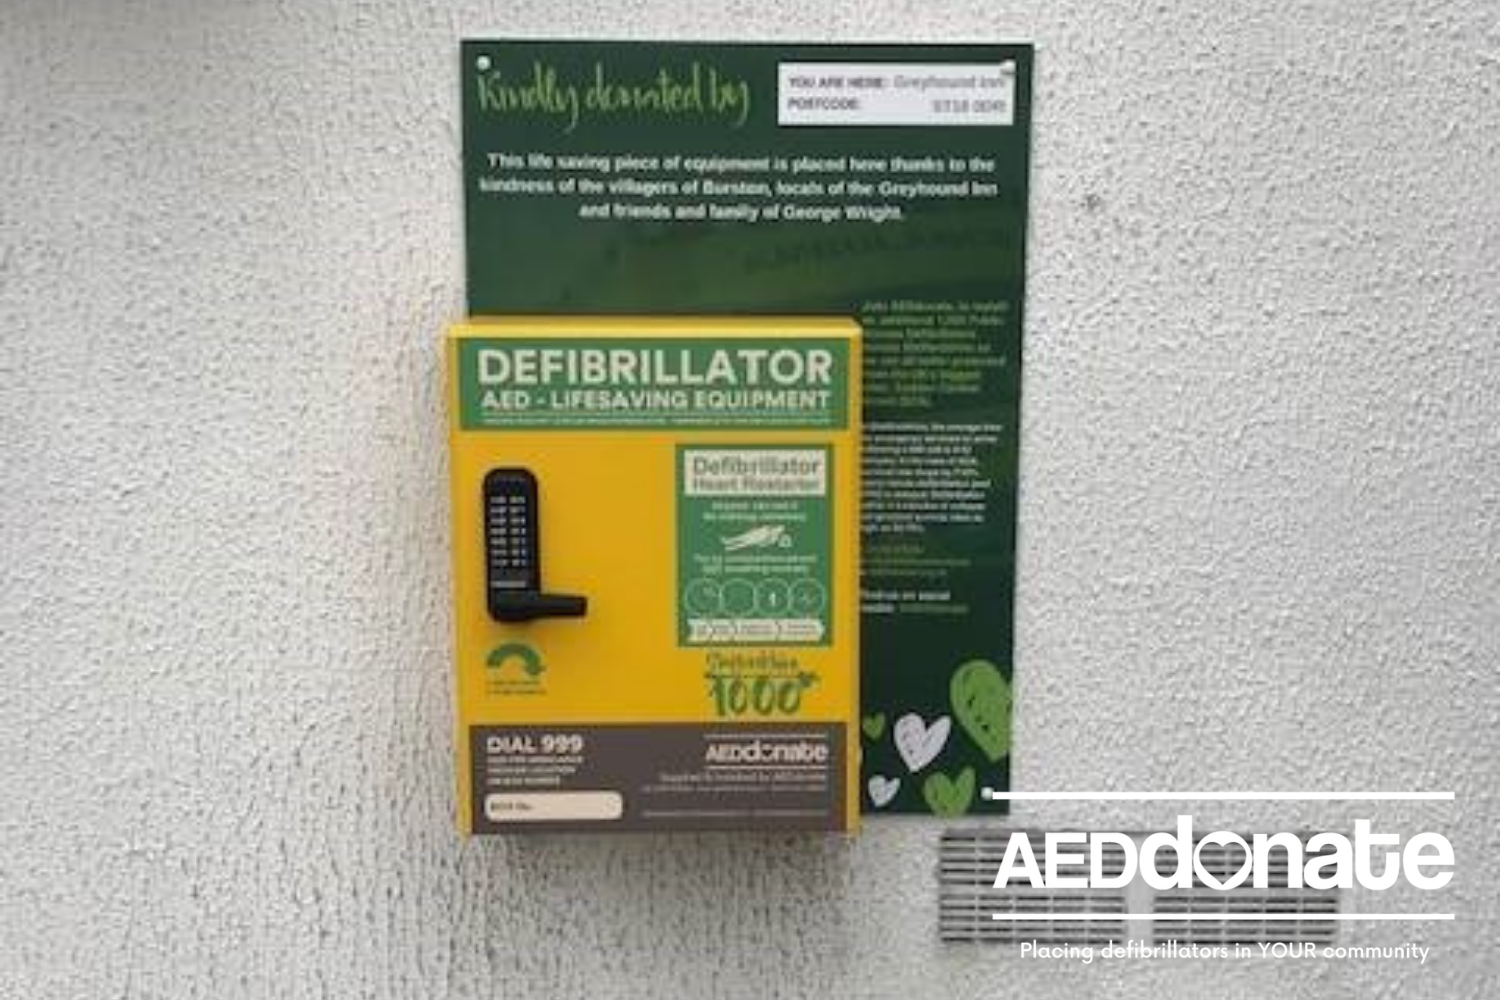 New AED for Burston Village, Staffordshire